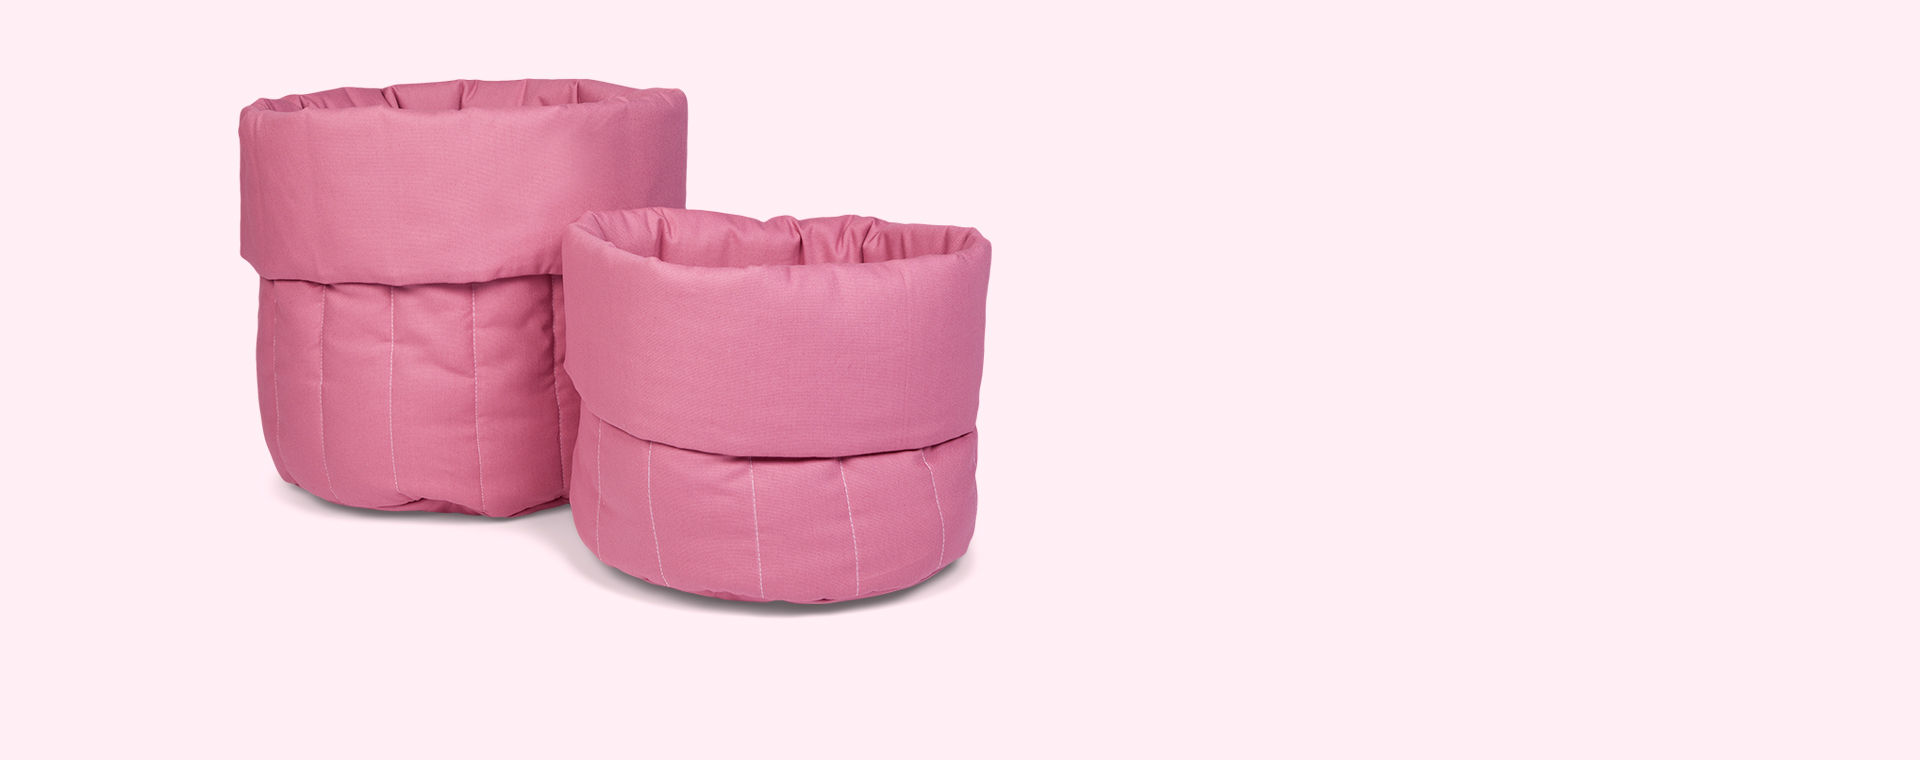 Blush Pink wigiwama Big Toy Storage Bag